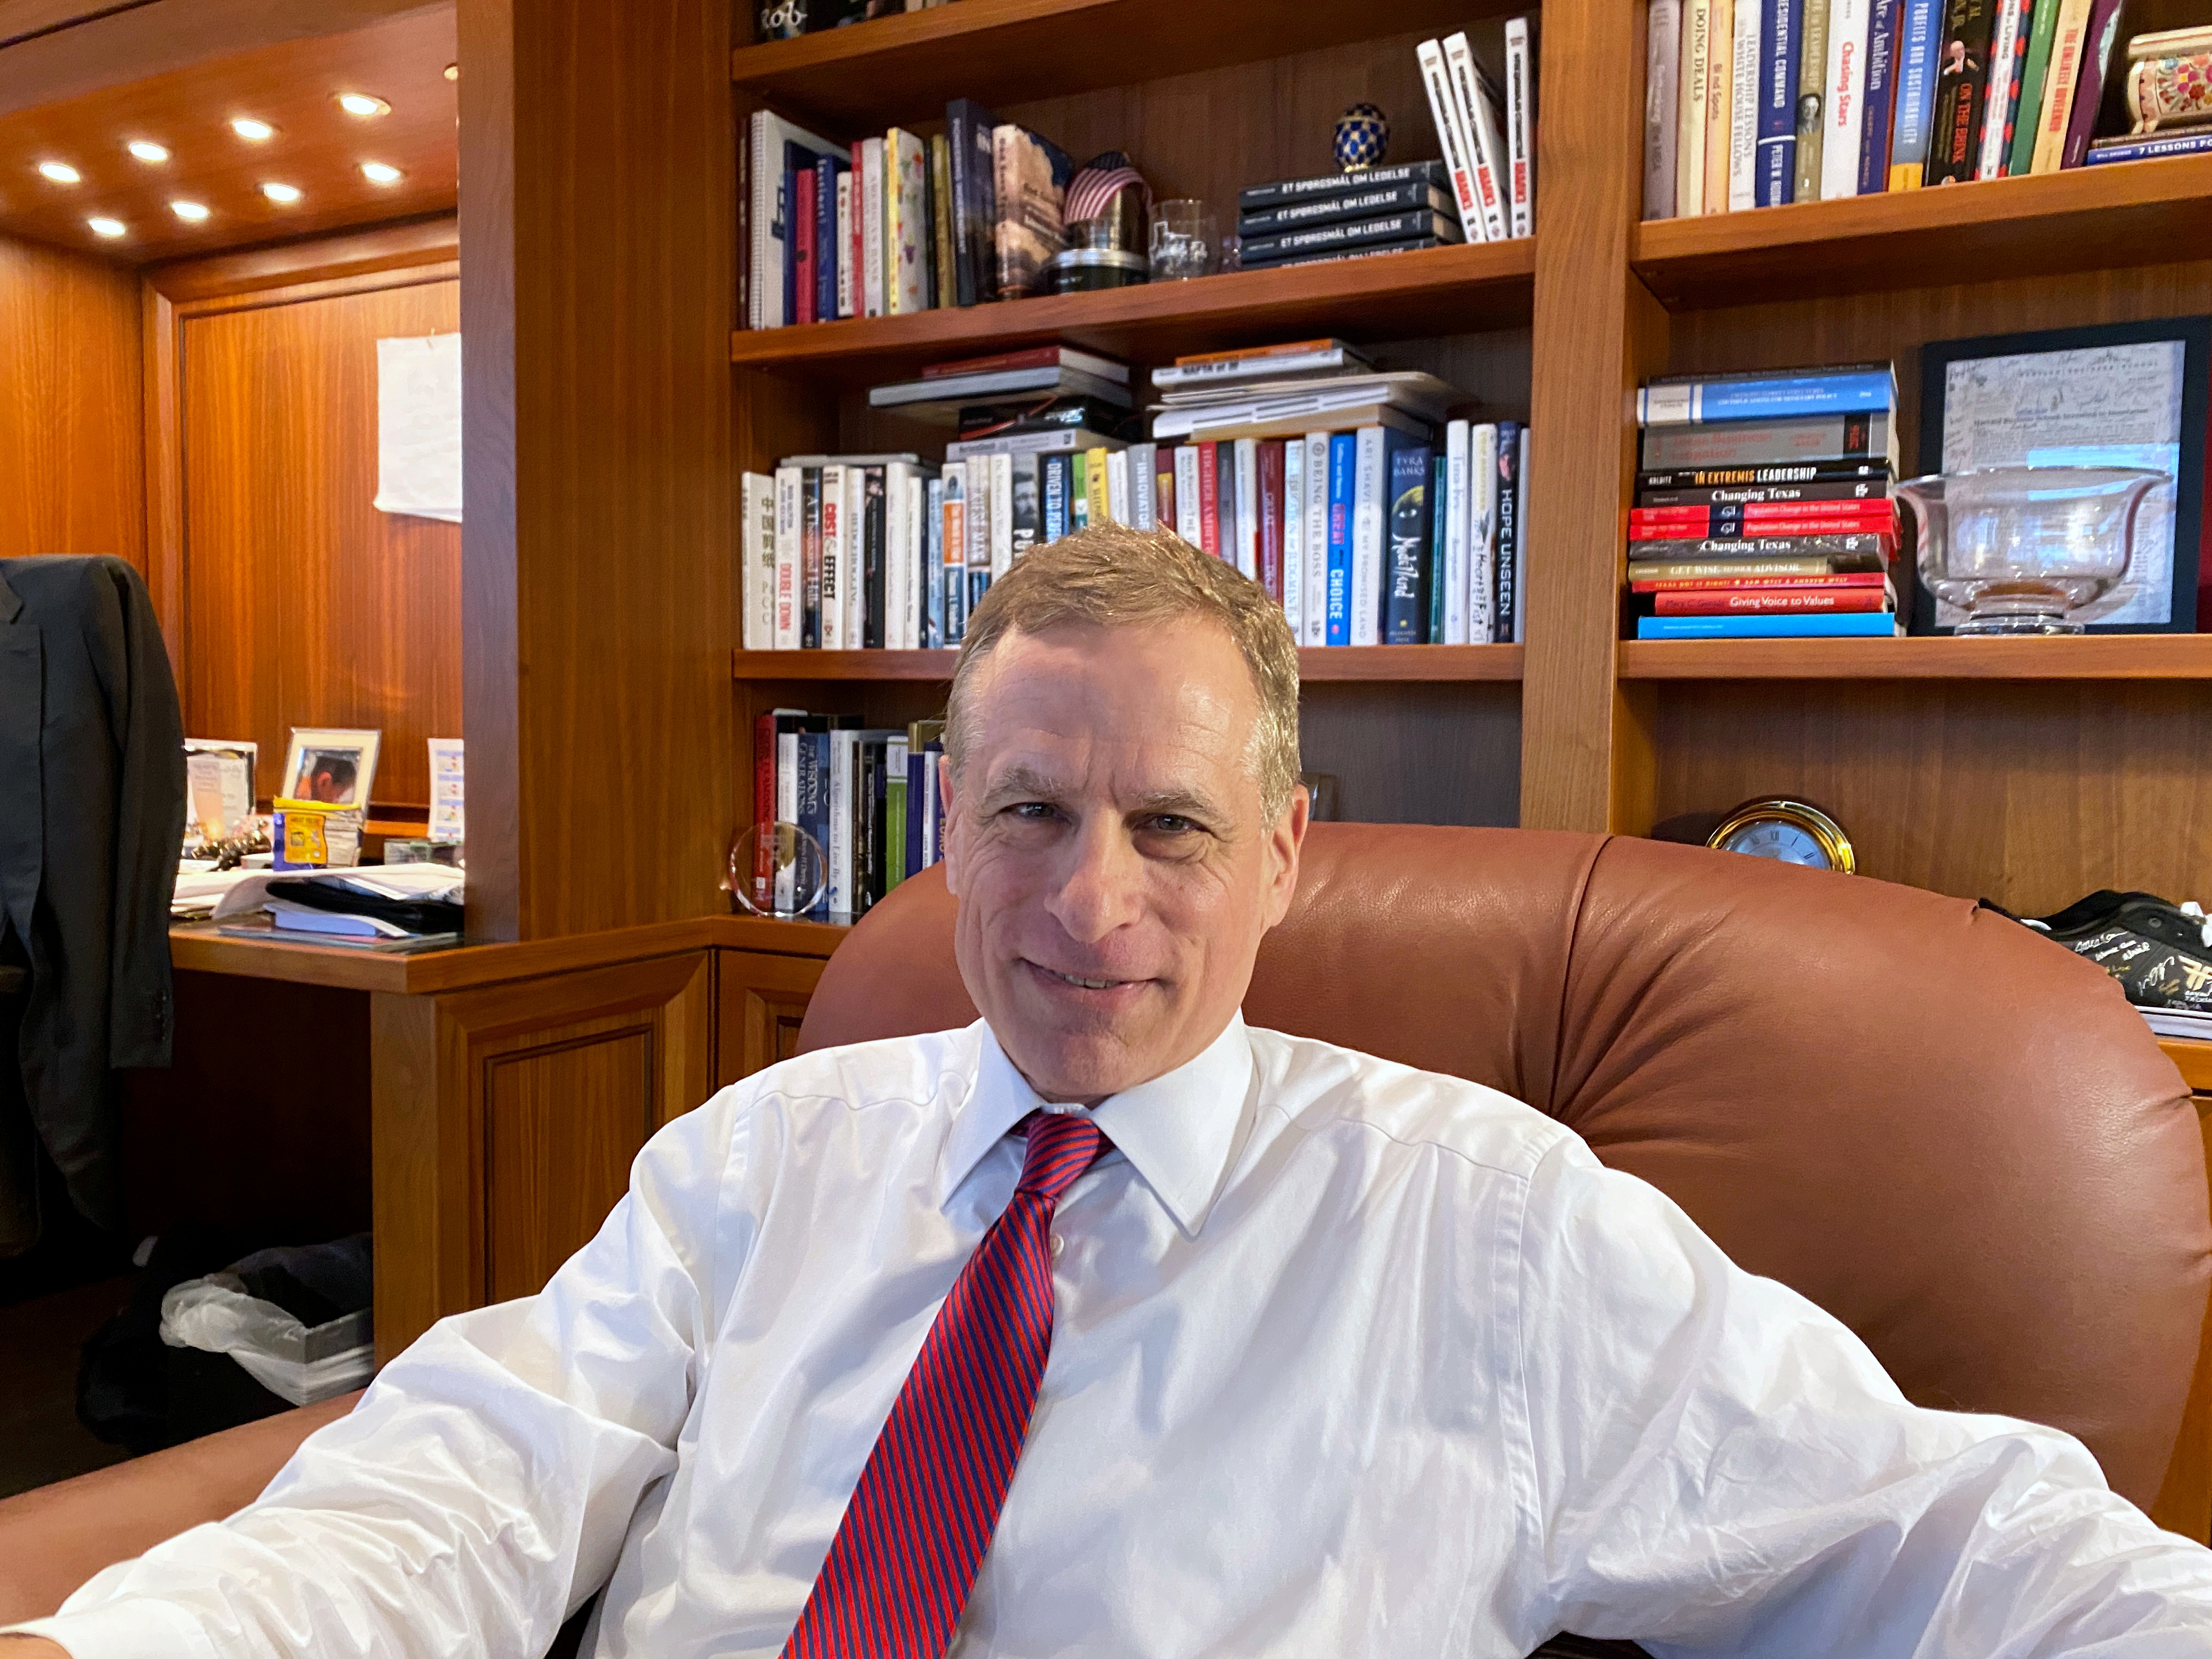 Dallas Federal Reserve Bank President Robert Kaplan speaks during an interview in his office at the bank's headquarters in Dallas, Texas, U.S. January 9, 2020. REUTERS/ Ann Saphir